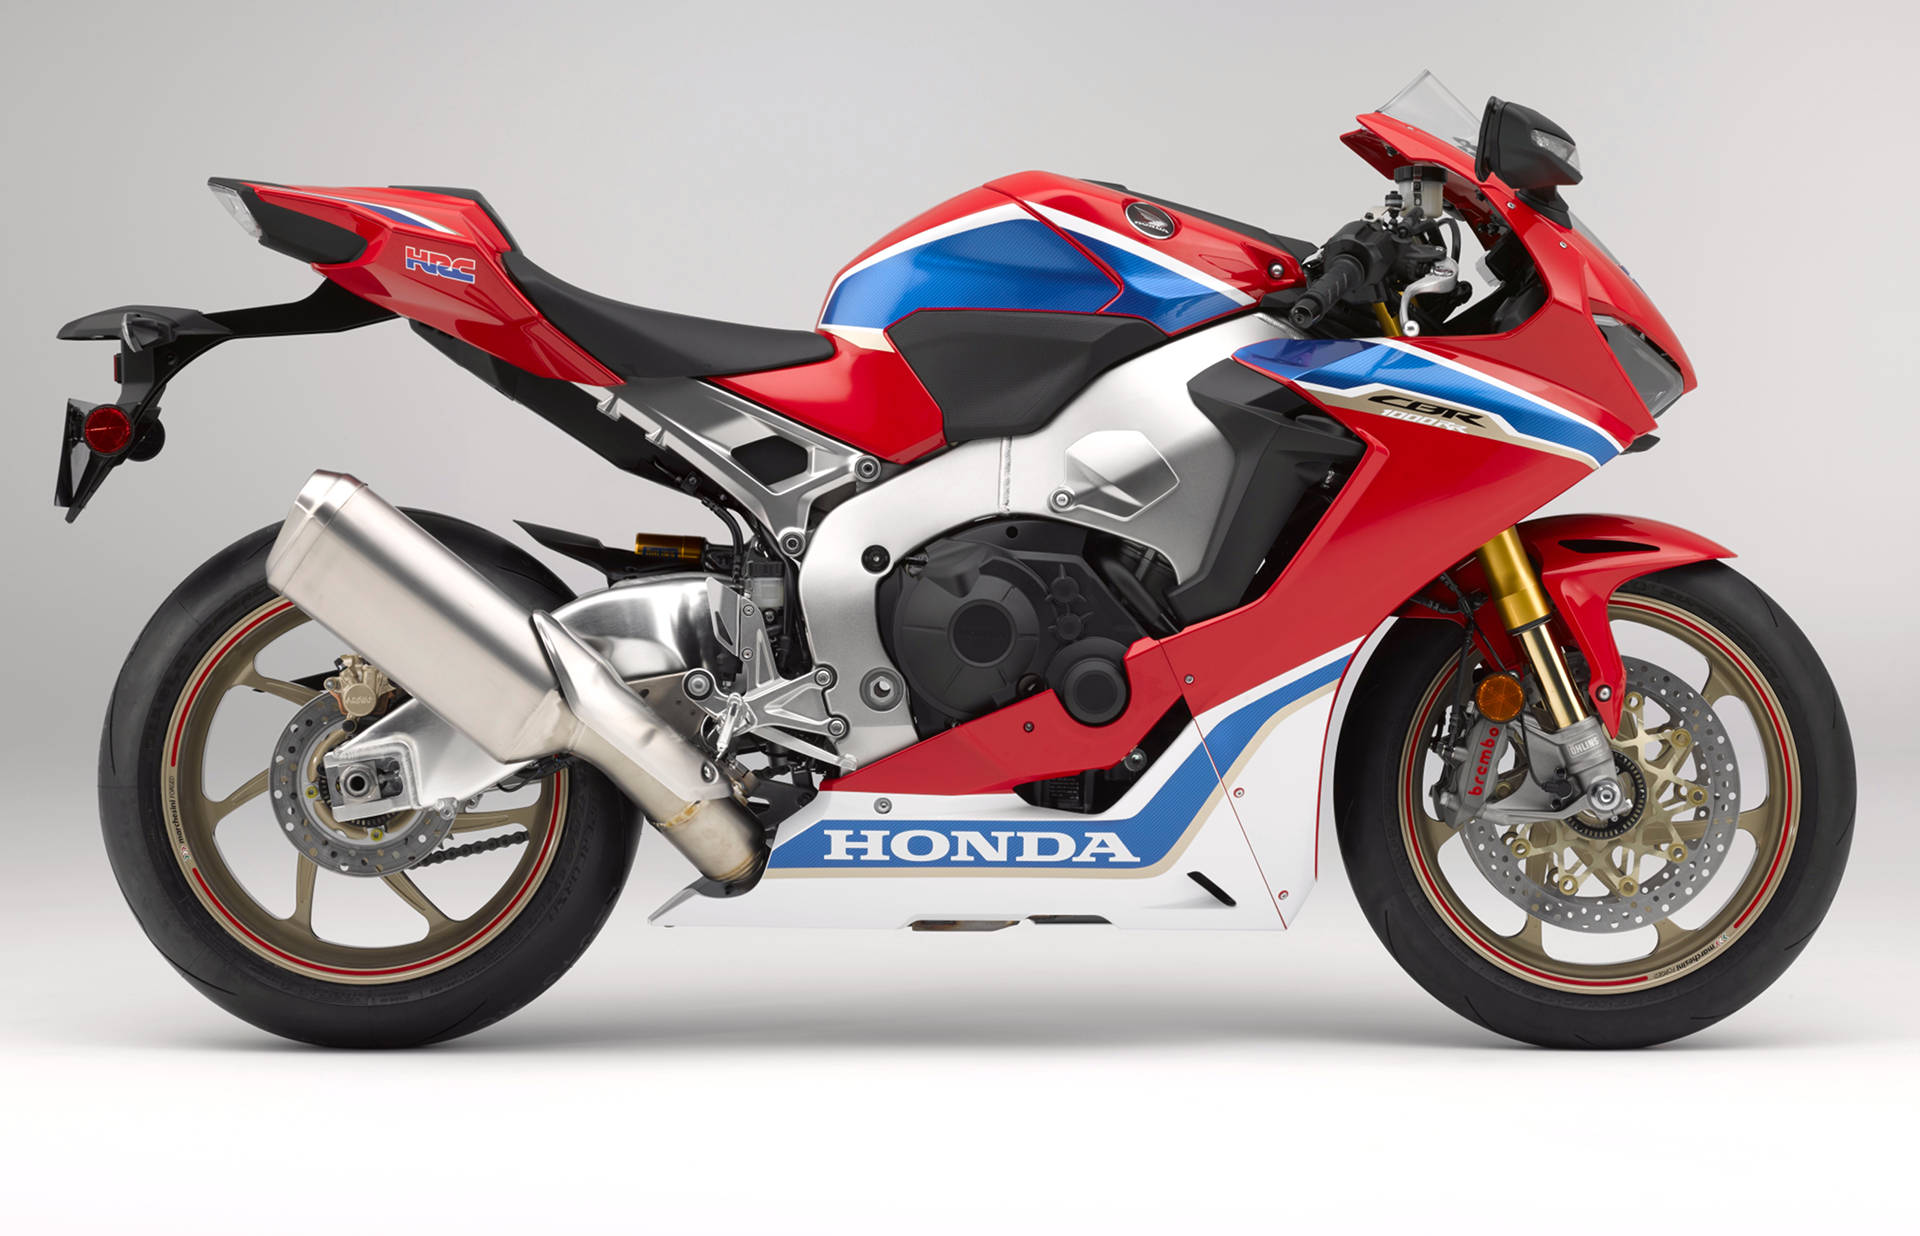 Honda's New CBR1000RR SP is 33 Pounds Lighter and 10 Horsepower ...